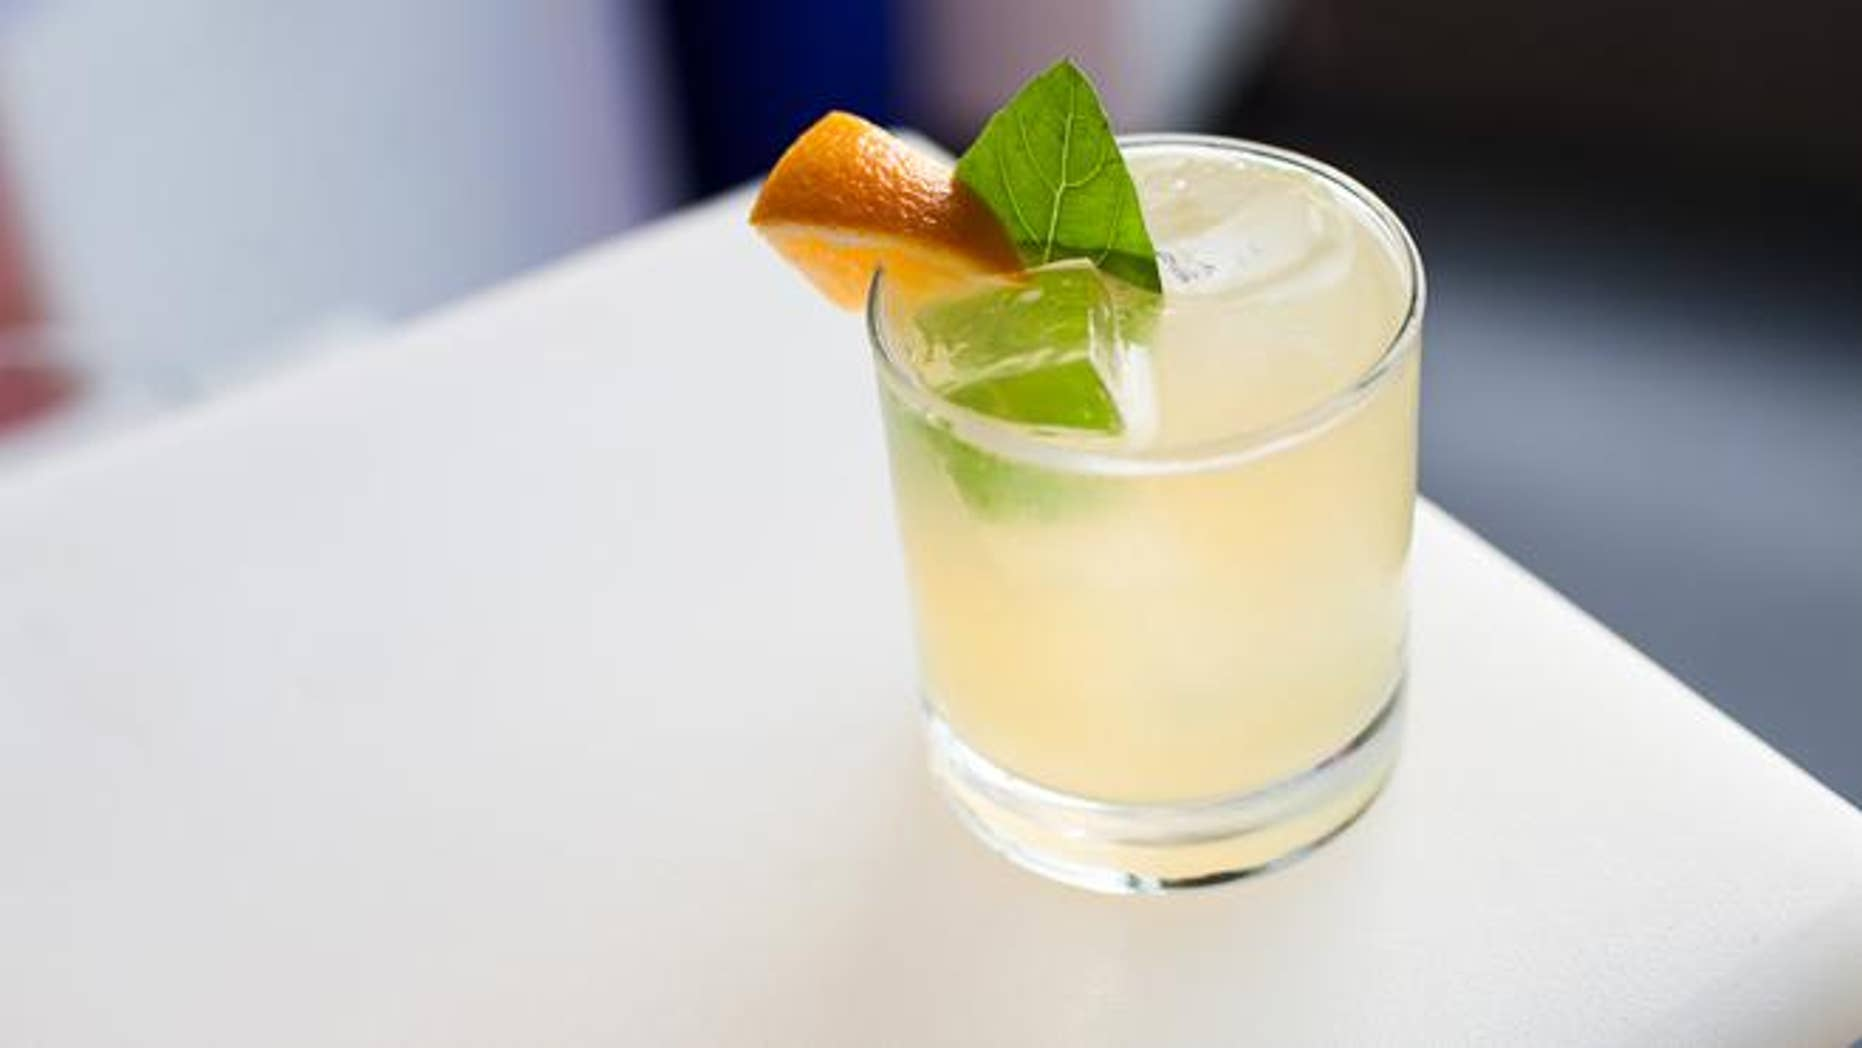 The new Basil Expedition cocktail made with Brugal rum.